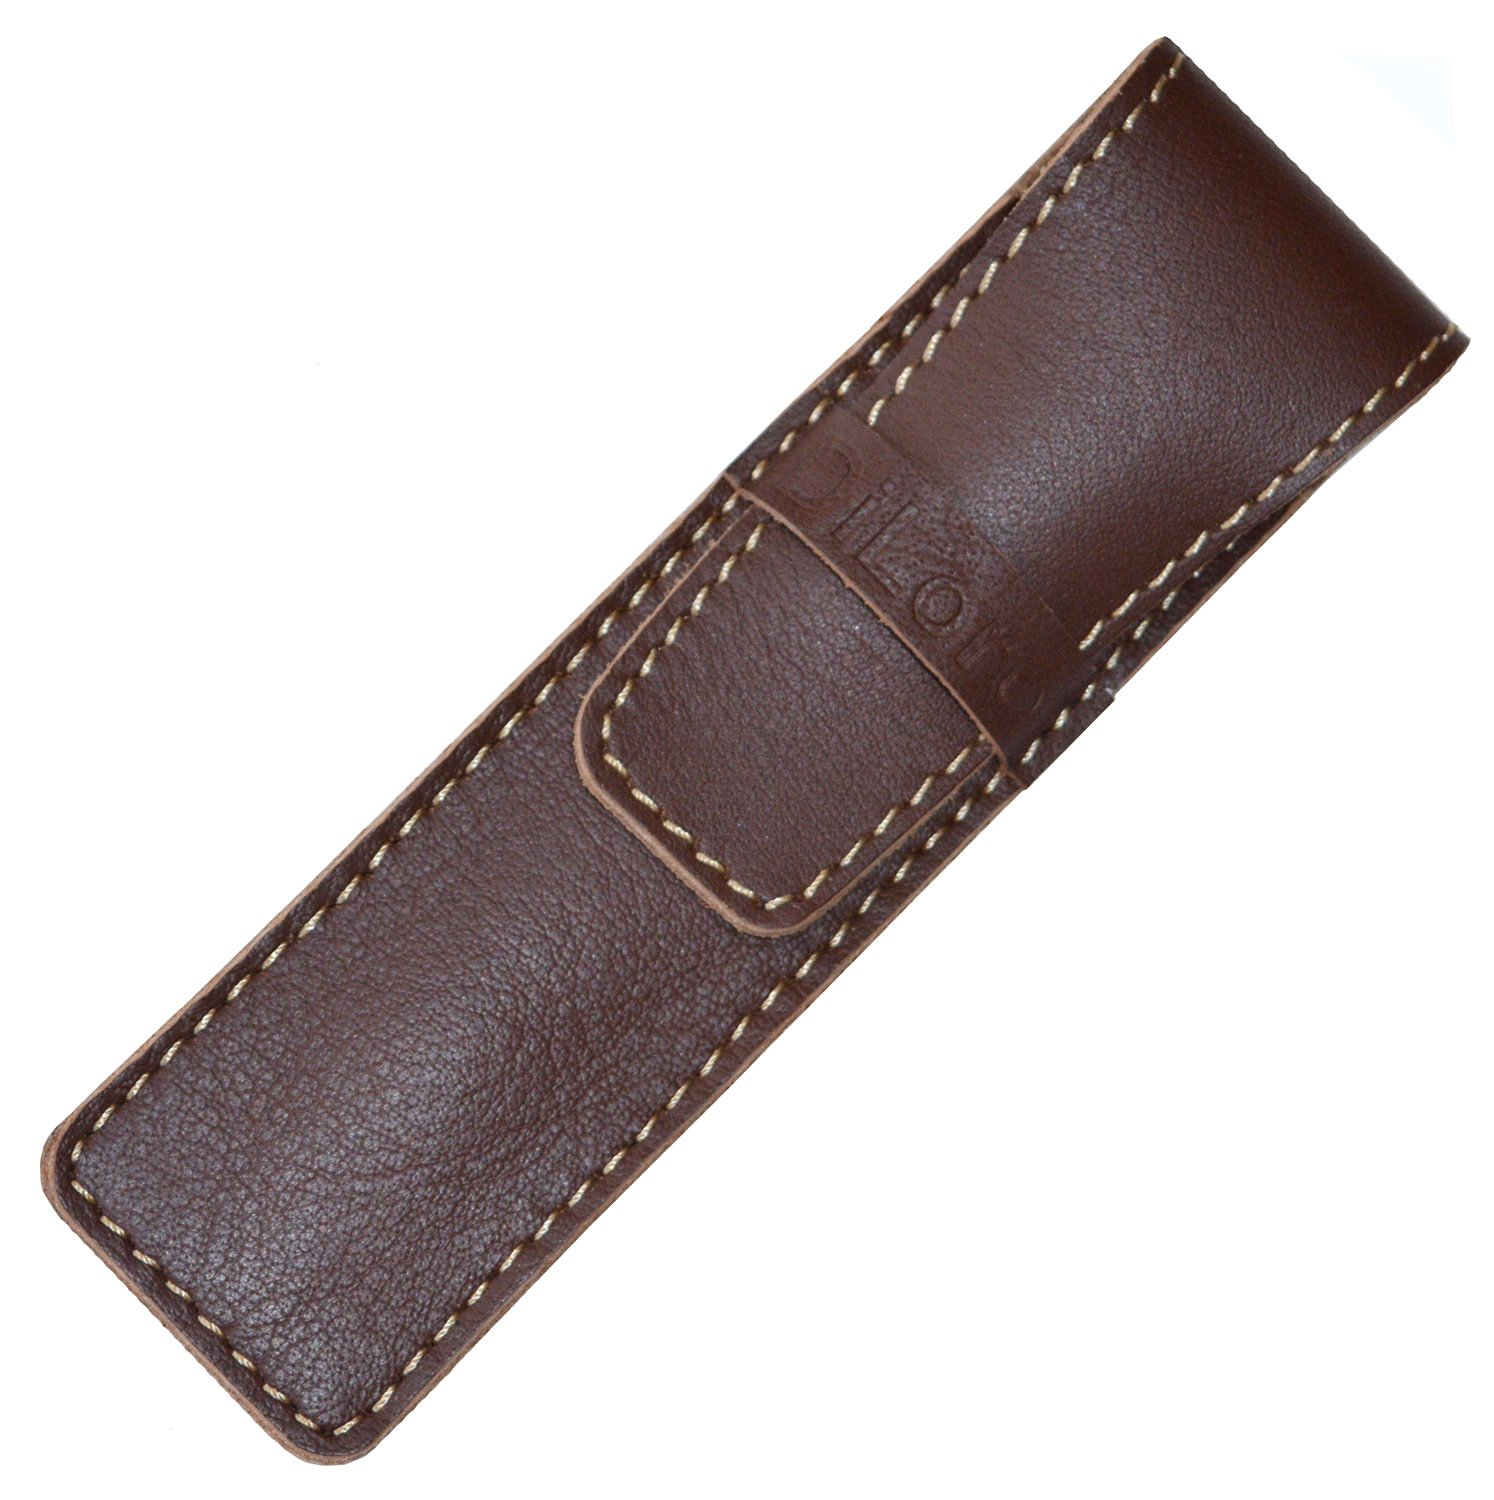 DiLoro Full Grain Top Quality Thick Buffalo Leather Single Pen Case Holder Brown with Promo Logo